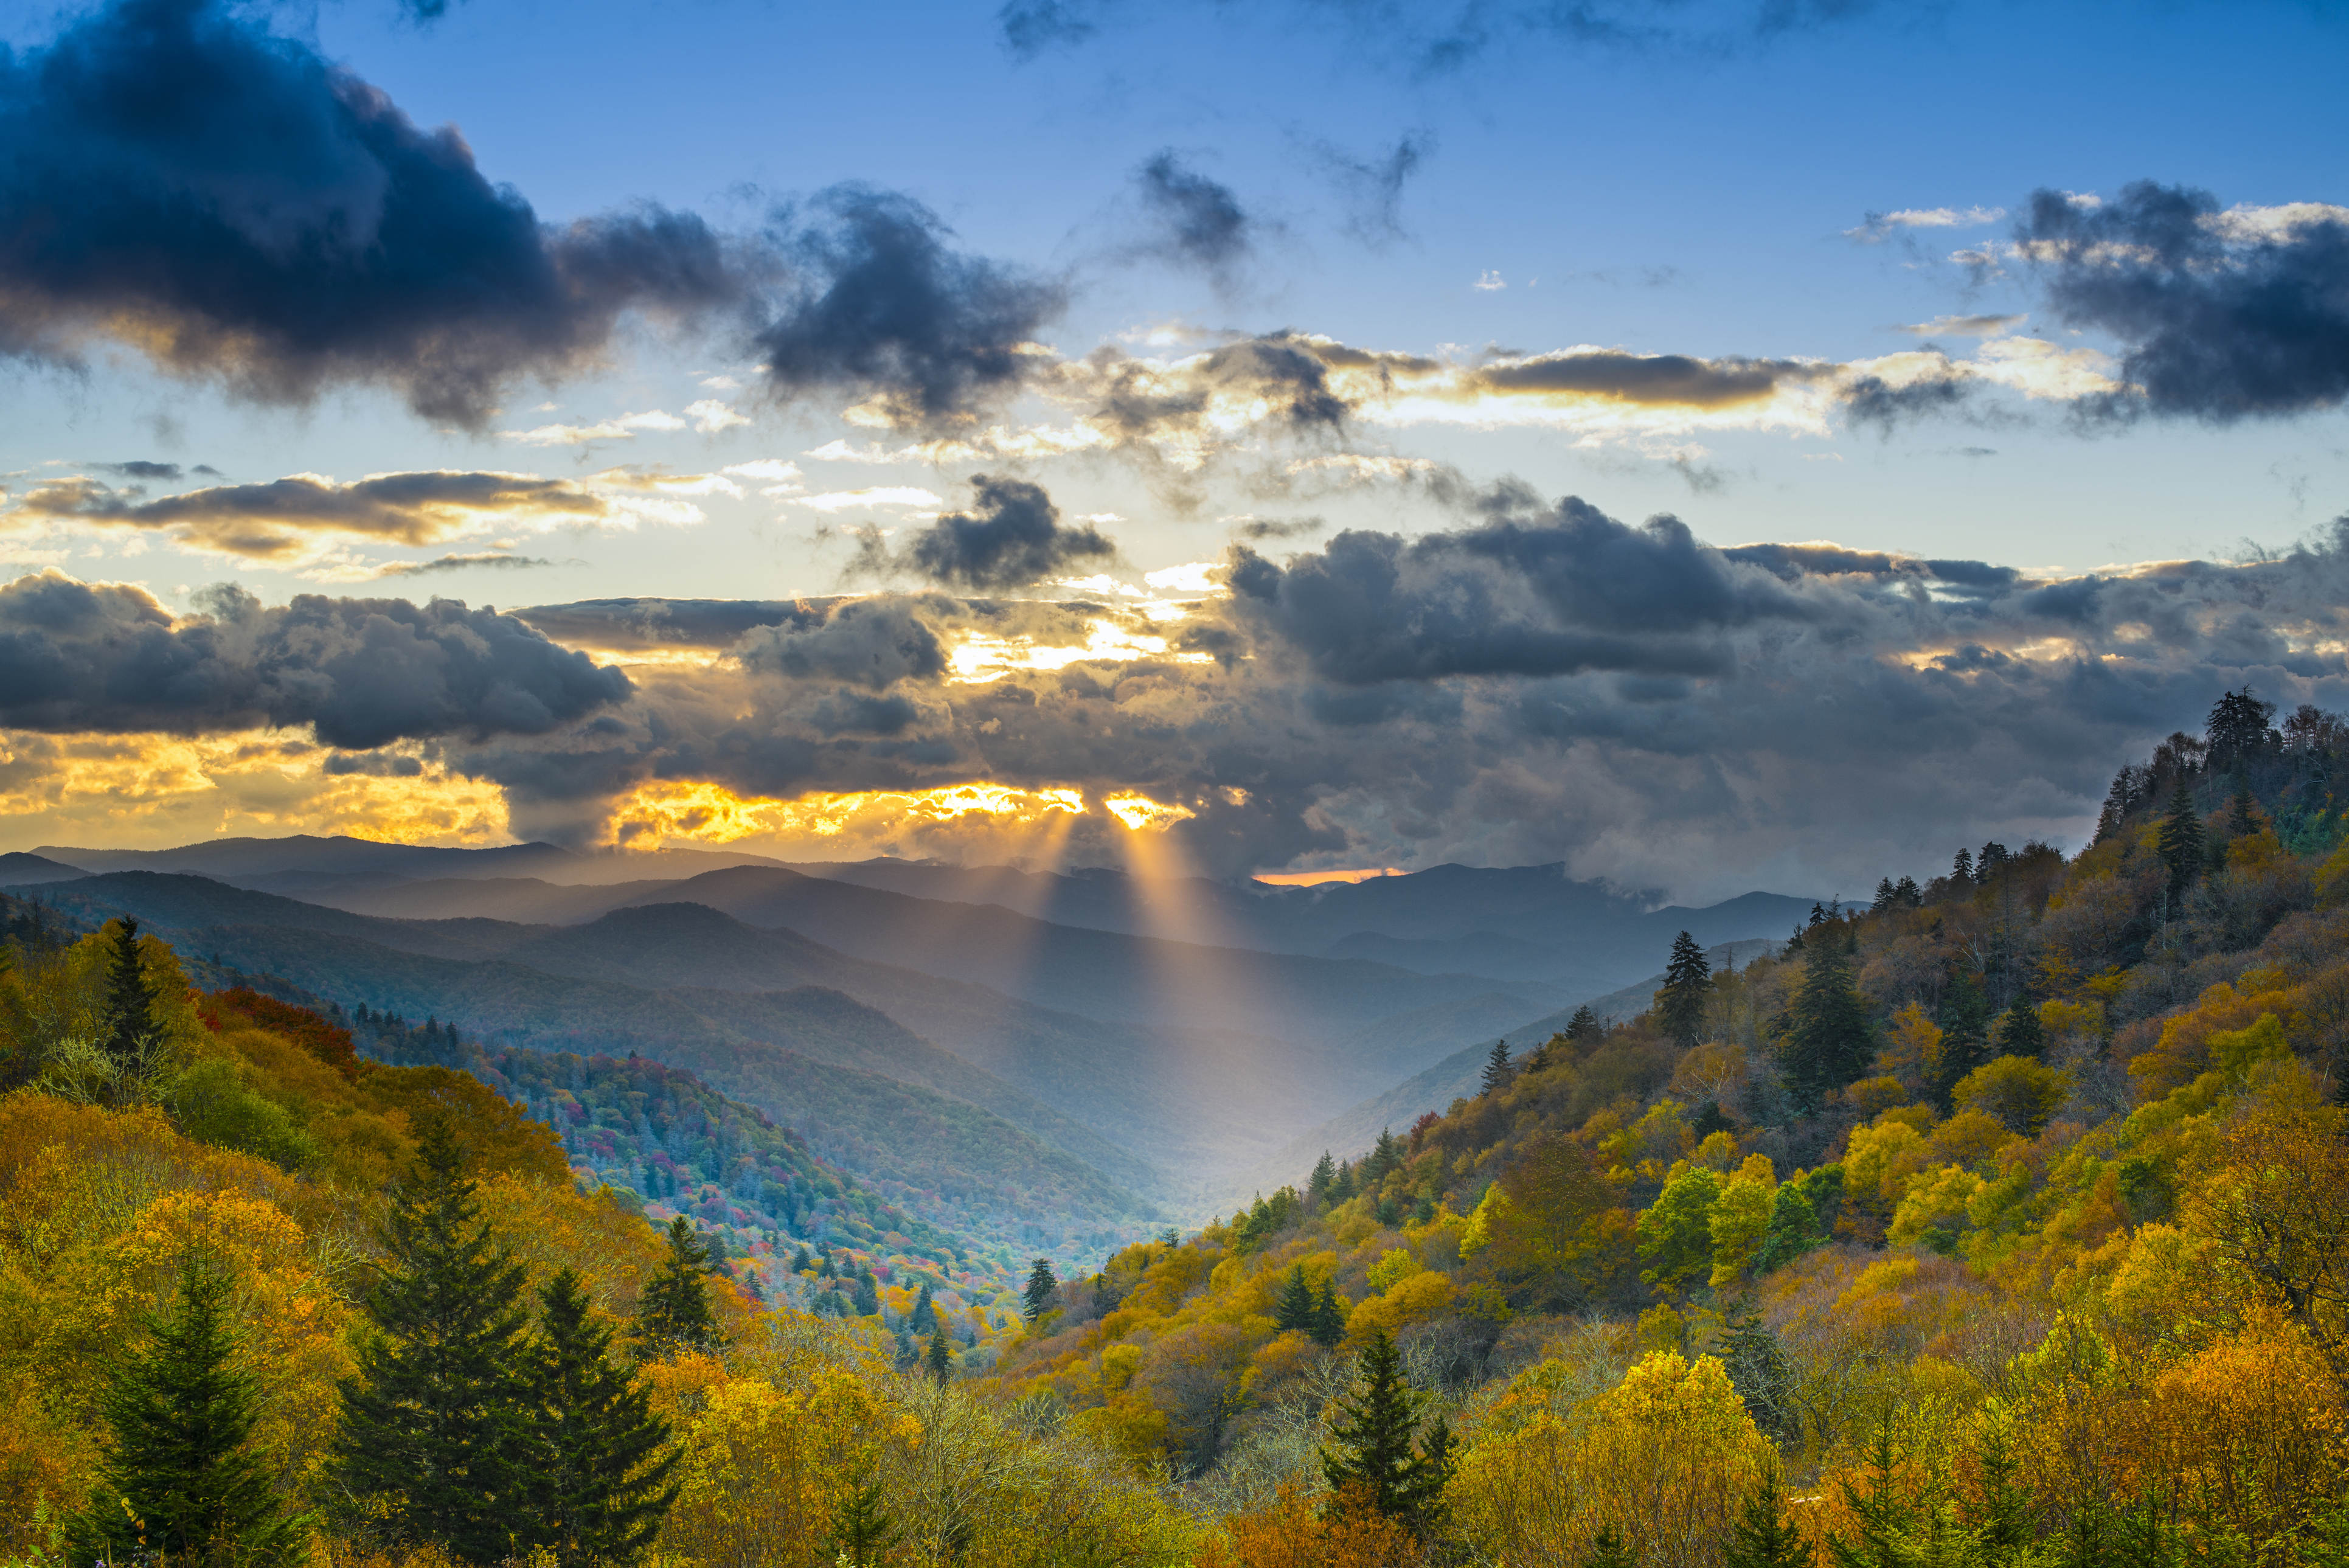 Sun rays coming through clouds in beautiful Smoky Mountains